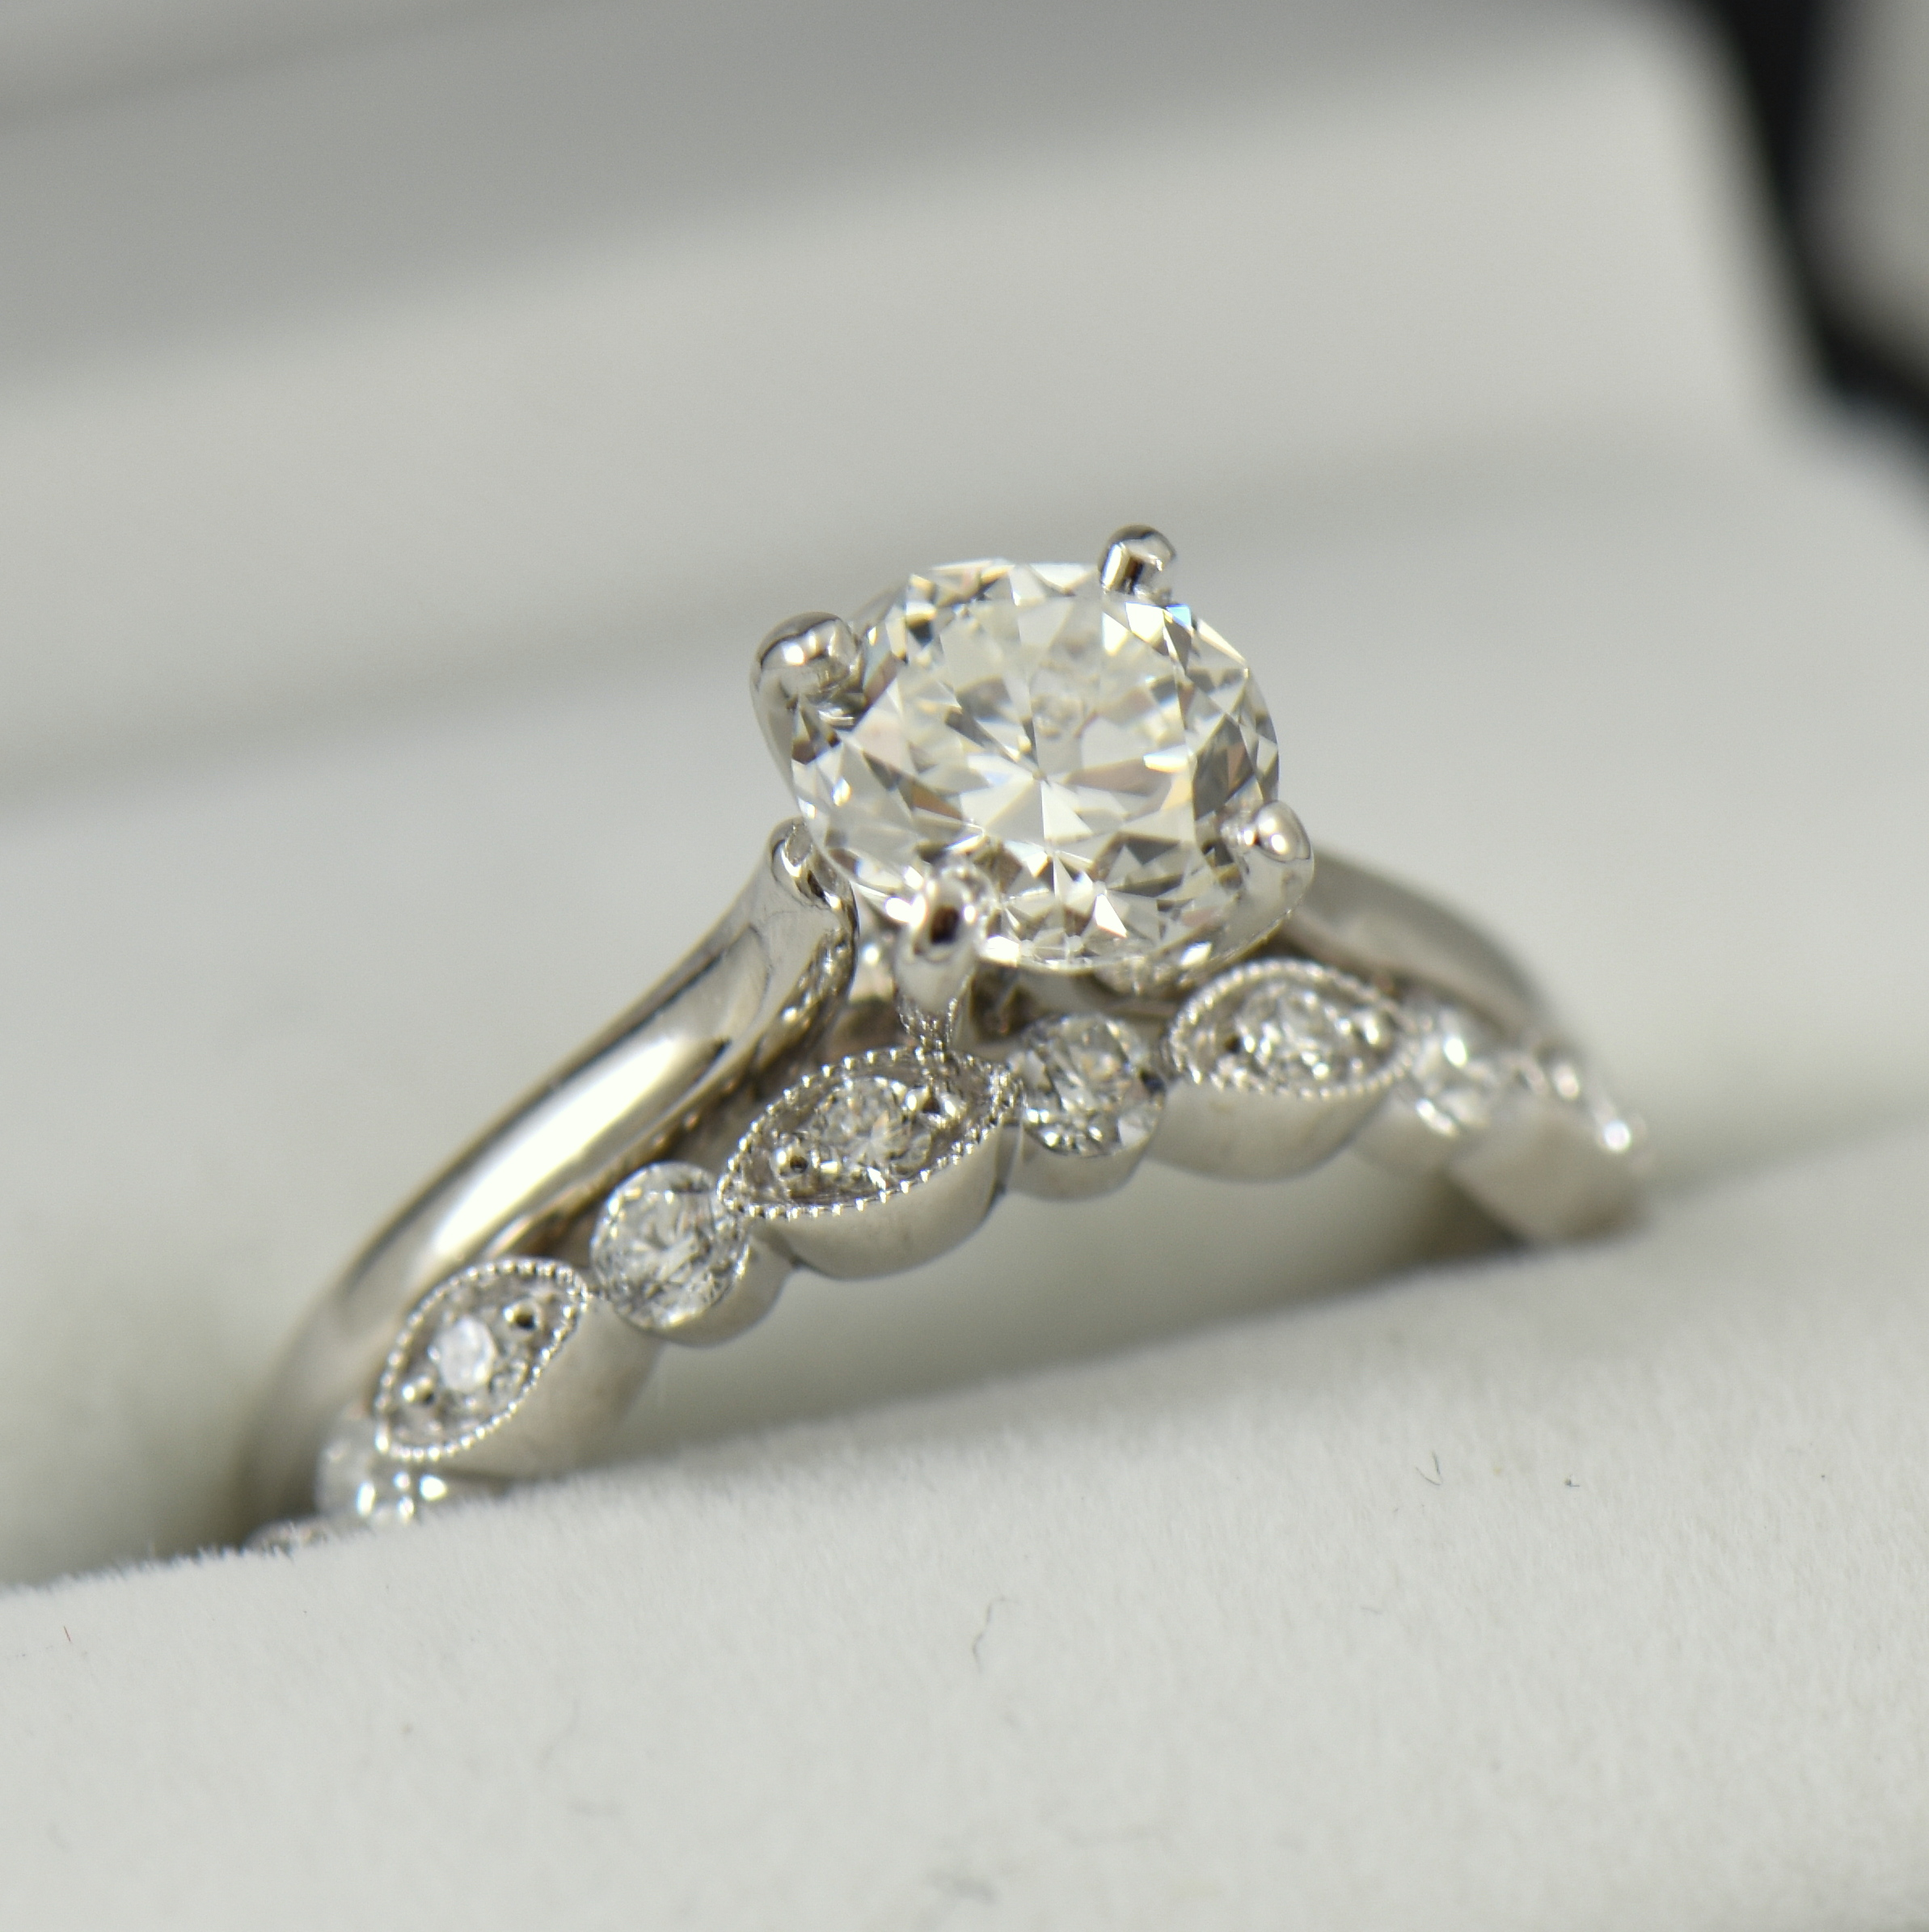 Platinum Solitaire Engagement Ring with Half Carat Modern Euro Diamond with Milgrain Band Copy